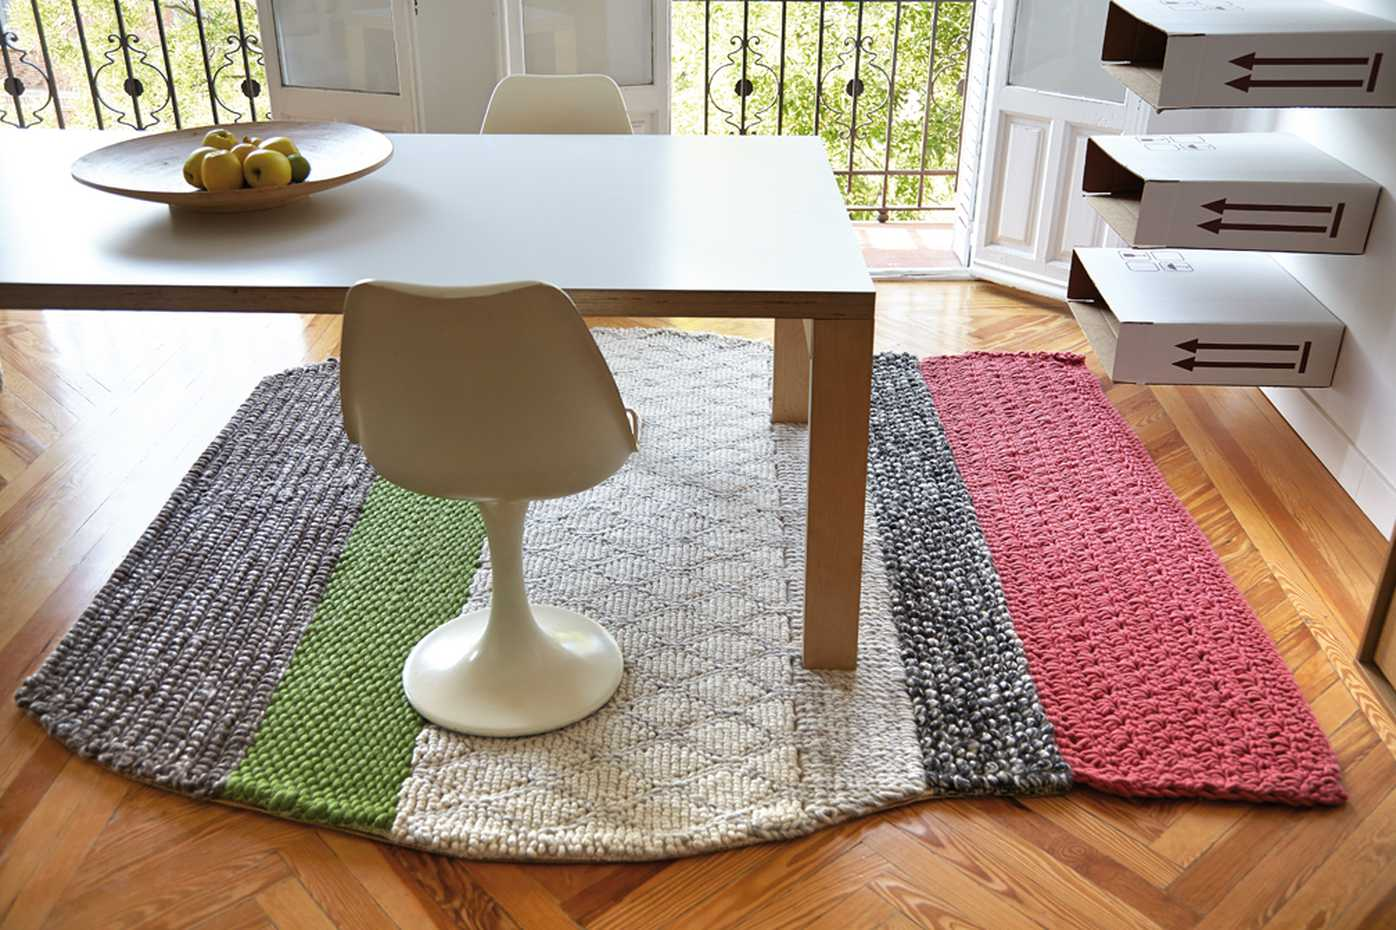 Mangas Original Rugs by Gan Rugs product image 9